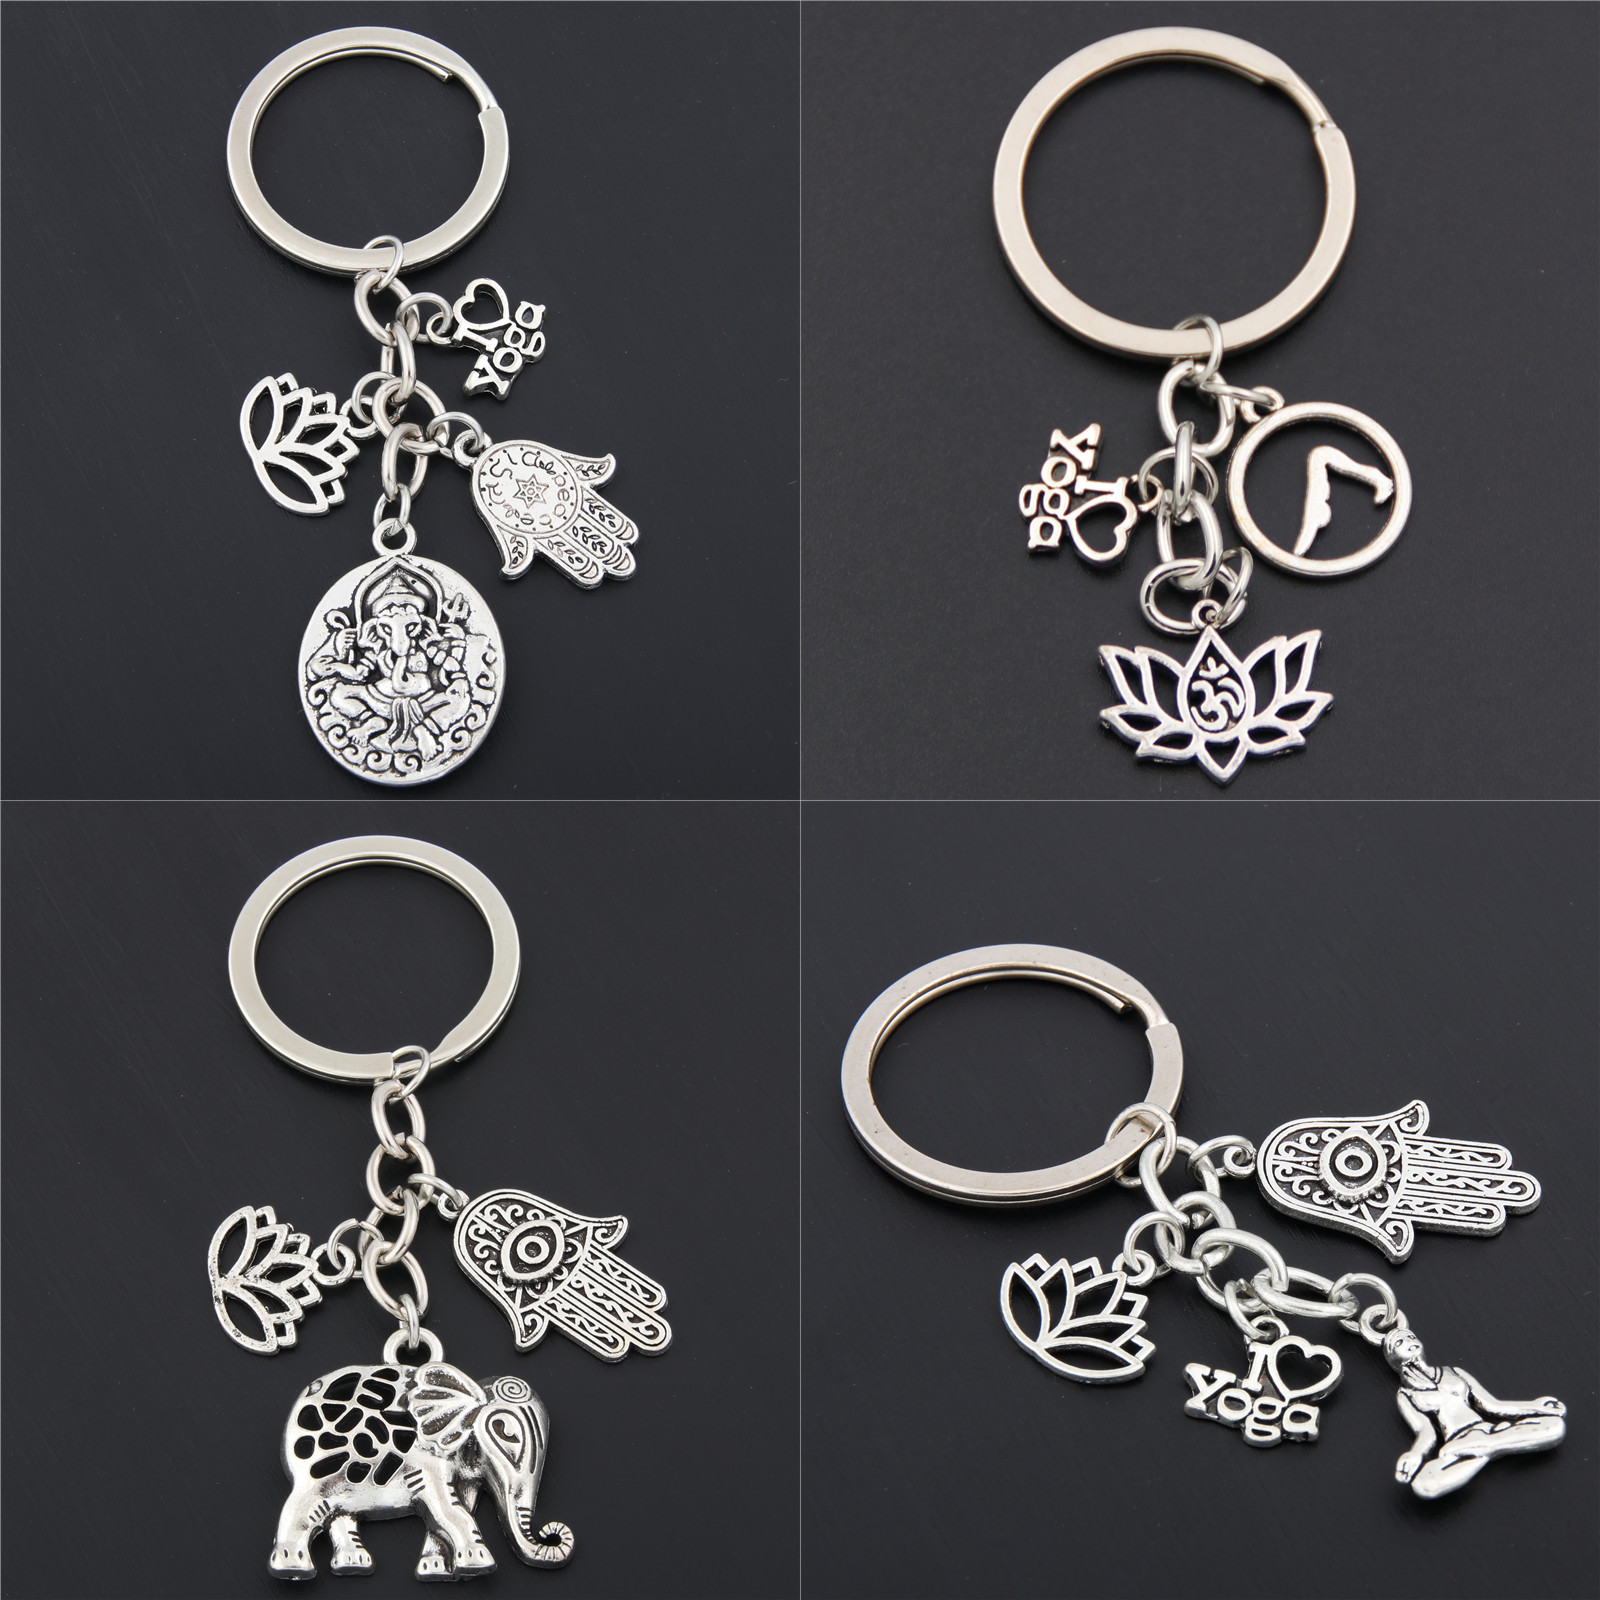 1pc I Love Yoga Namaste Charm Lotus Pendant Keychain Keyring Om Ohm Aum Jewelry Gift For Women Dropshipping